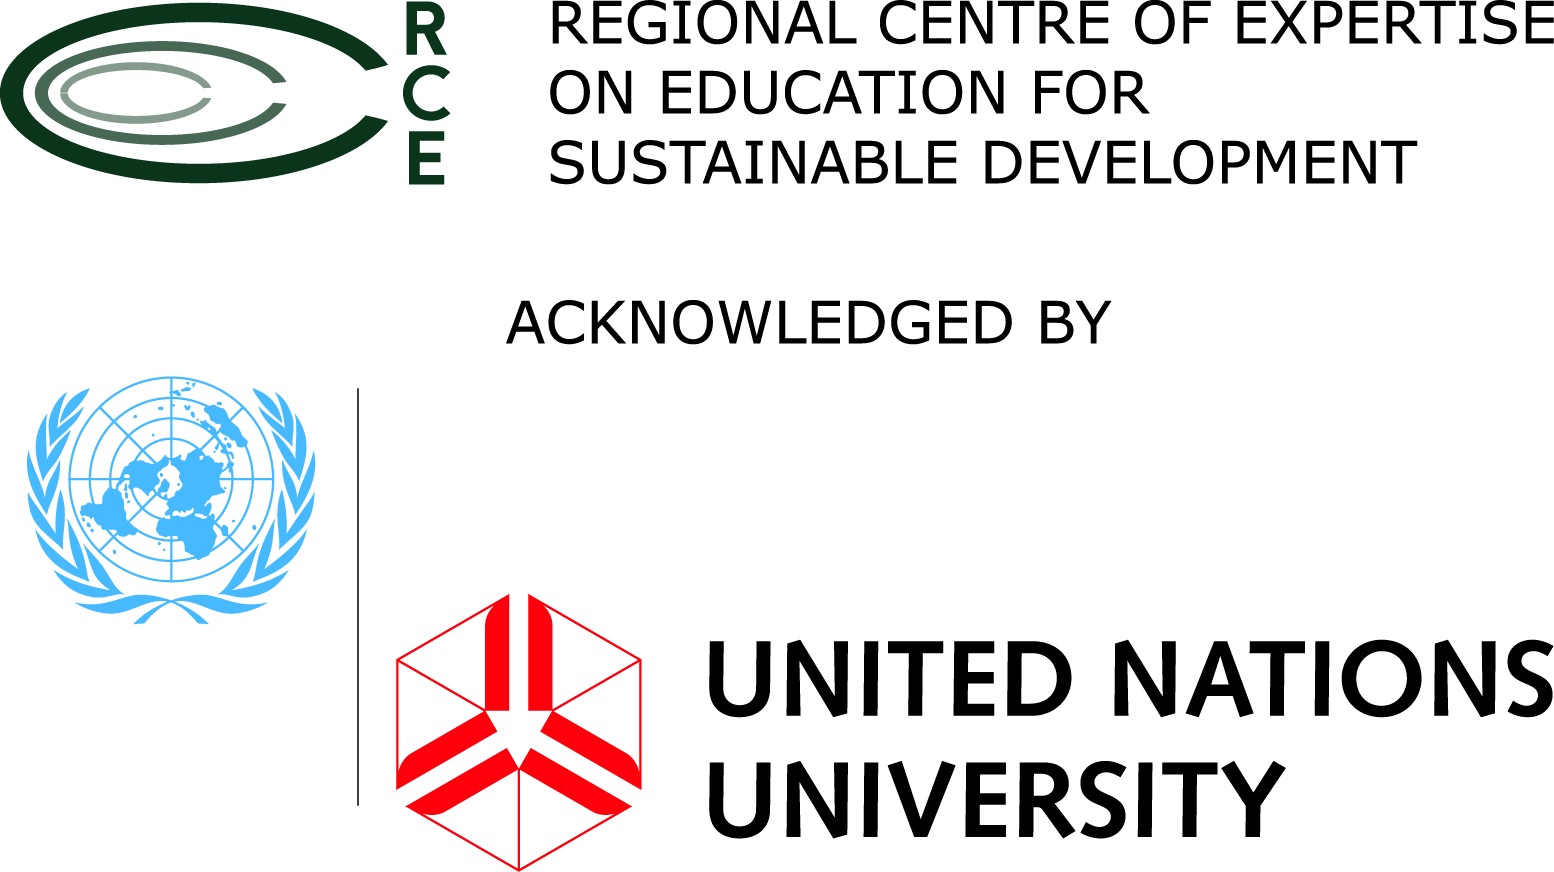 Rce Logo Use Policy Rce Network